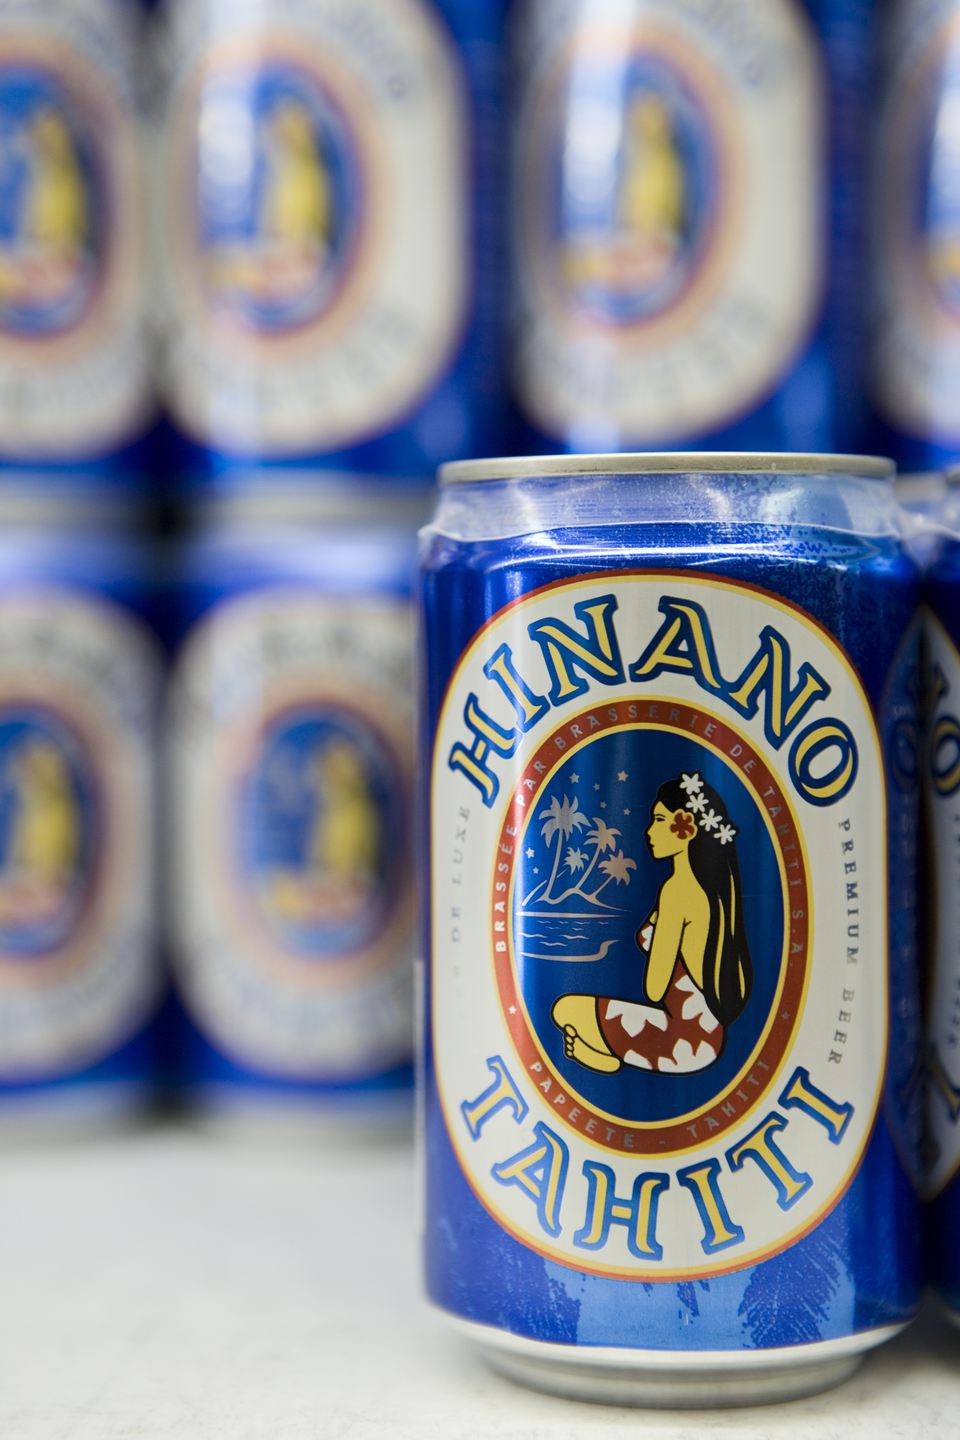 Cans of Hinano Lager